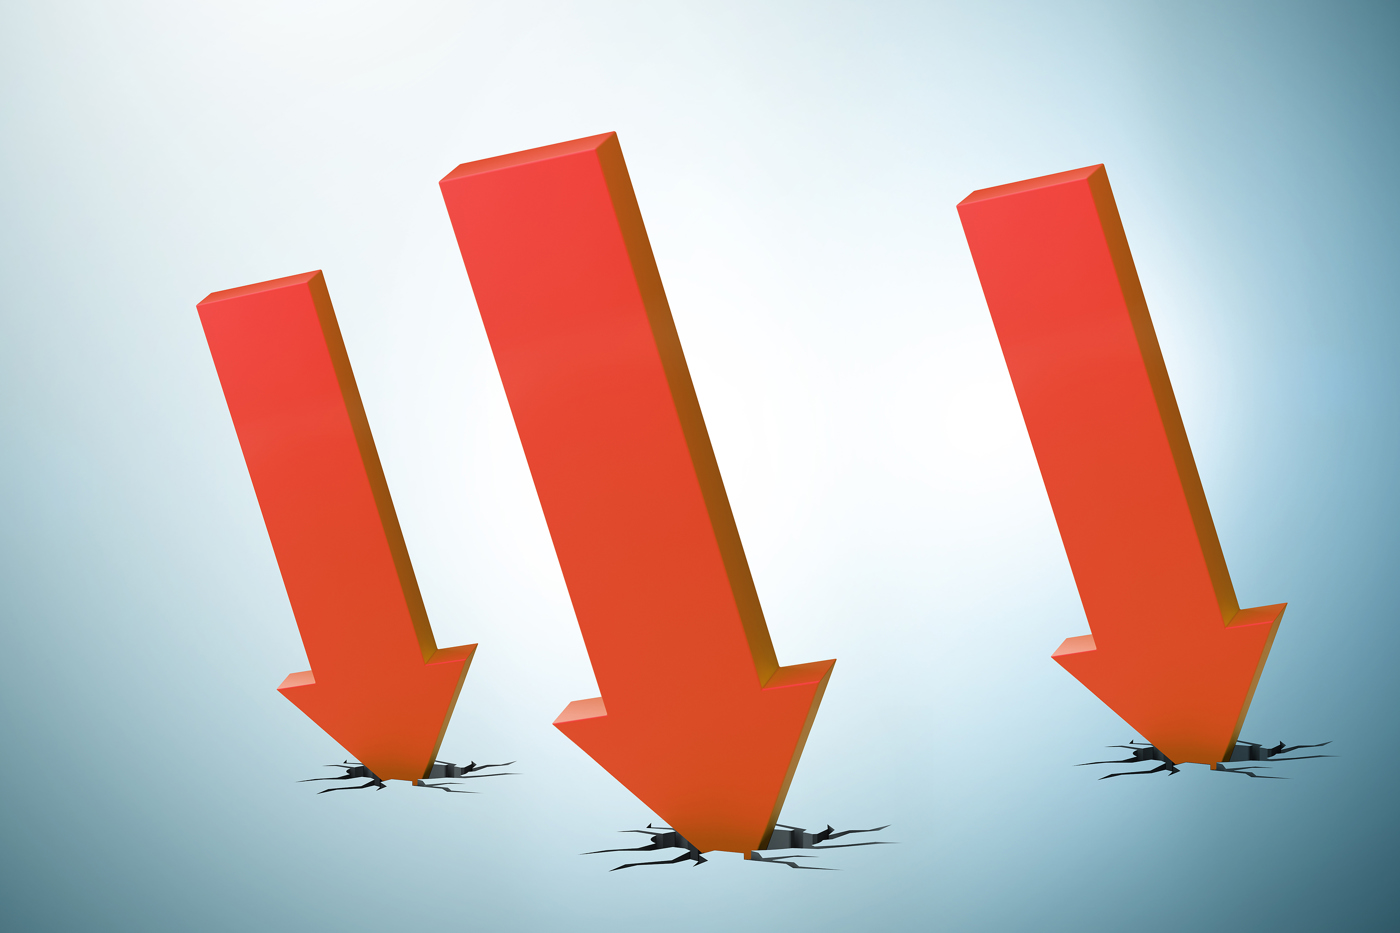 Down Trend Stock, Downtrend, Red arrow down